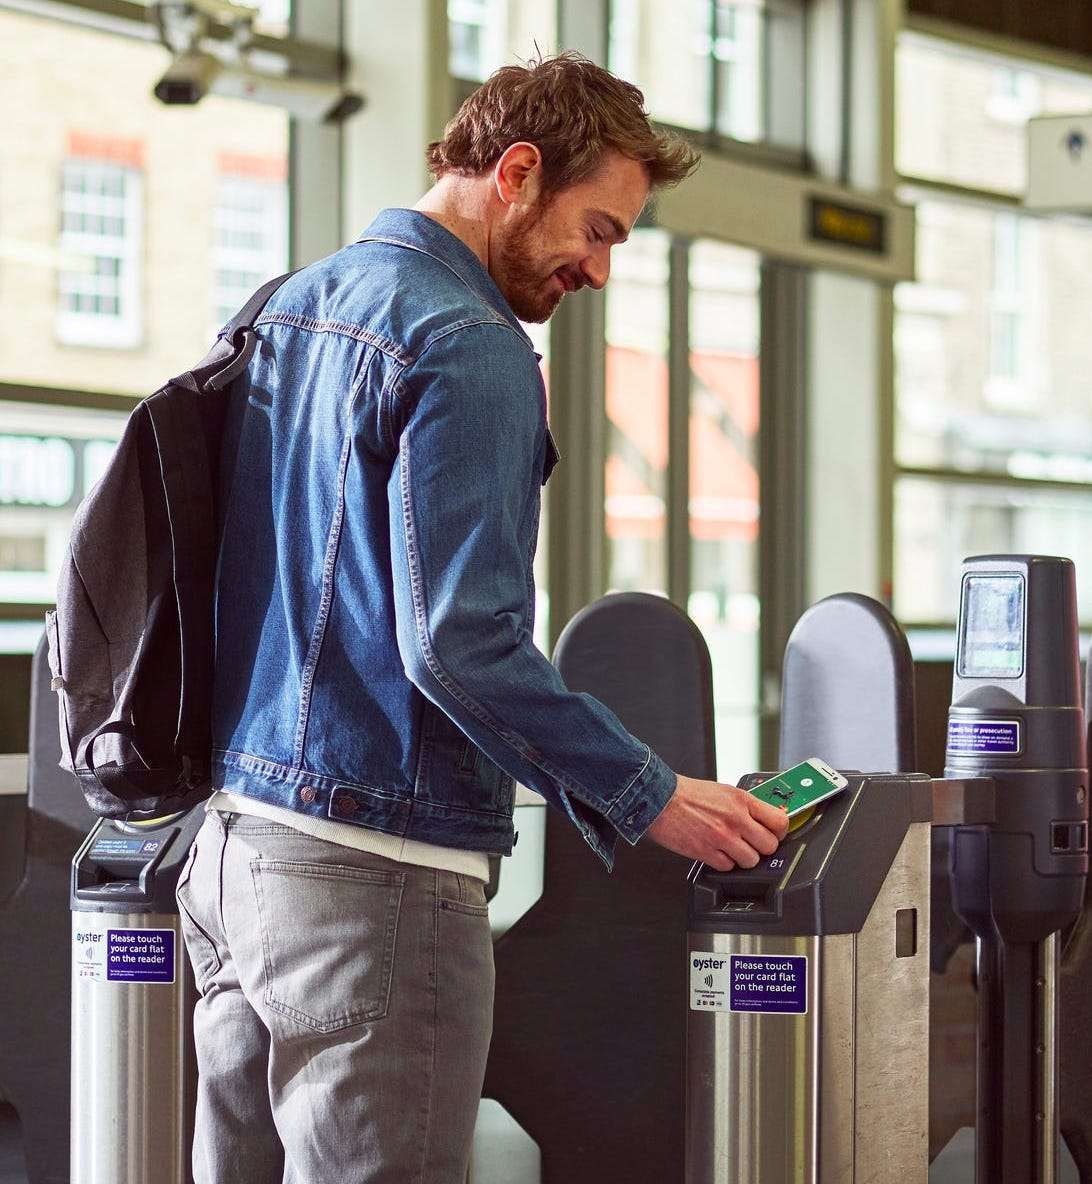 Transport for London's Lucrative Sponsorship Deal with Google Shows Value of 'Point of Sale' Real Estate at Fare Gates